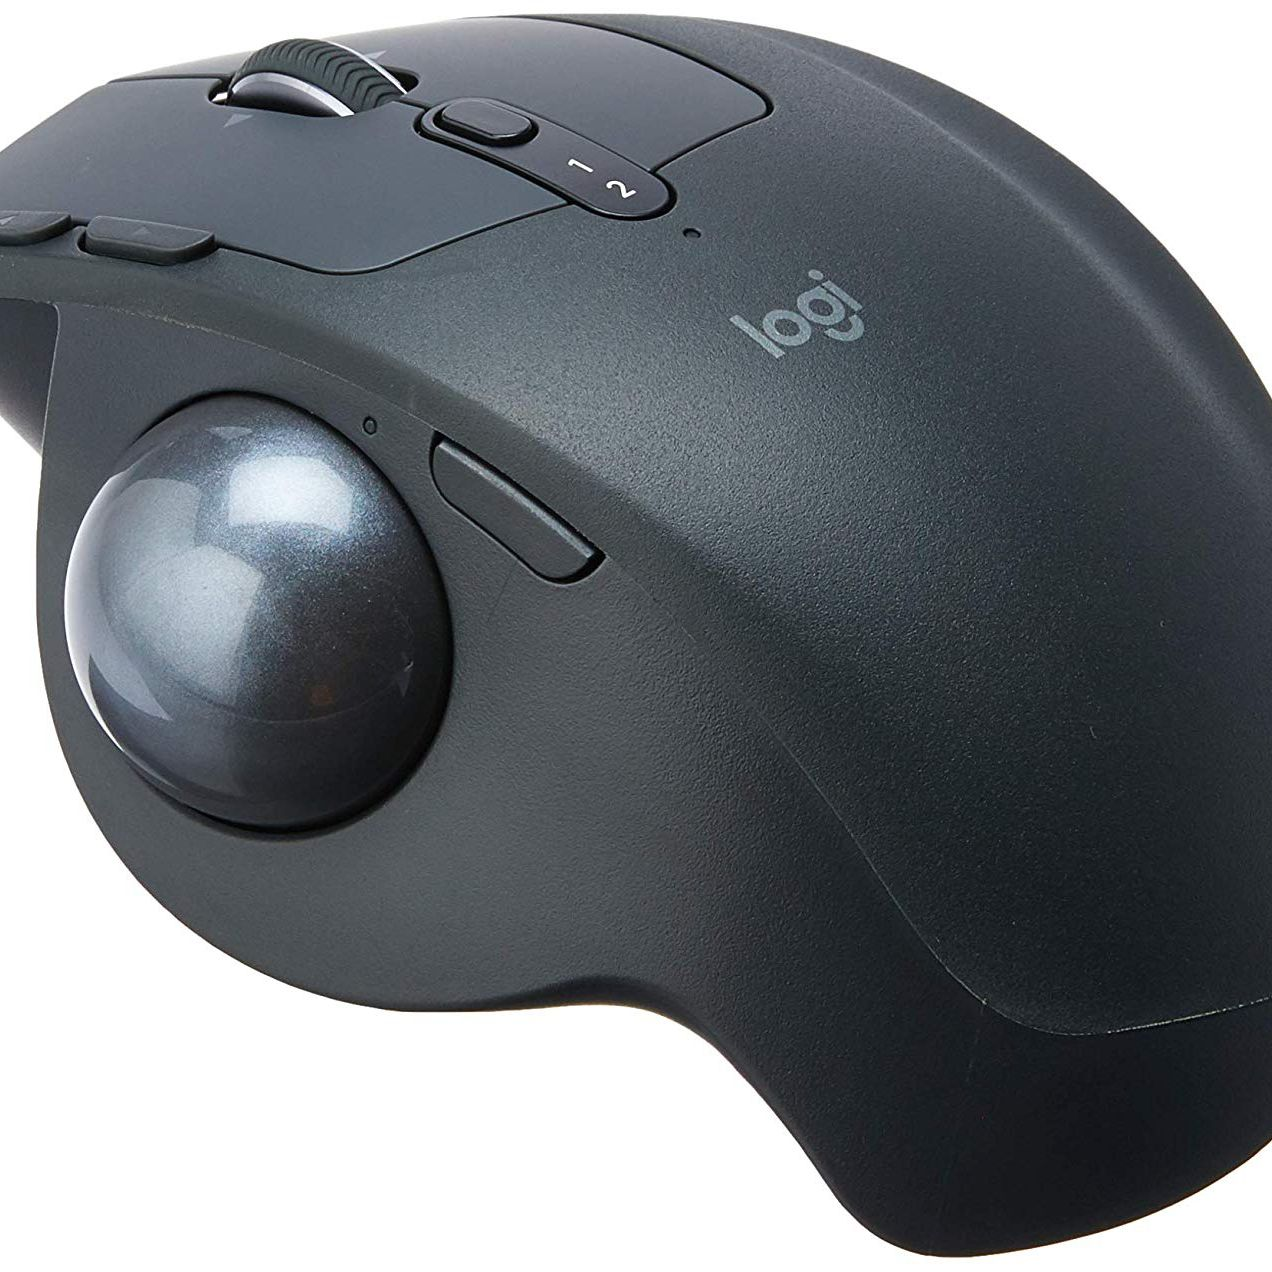 353f7382b61 The 7 Best Trackball Mice of 2019